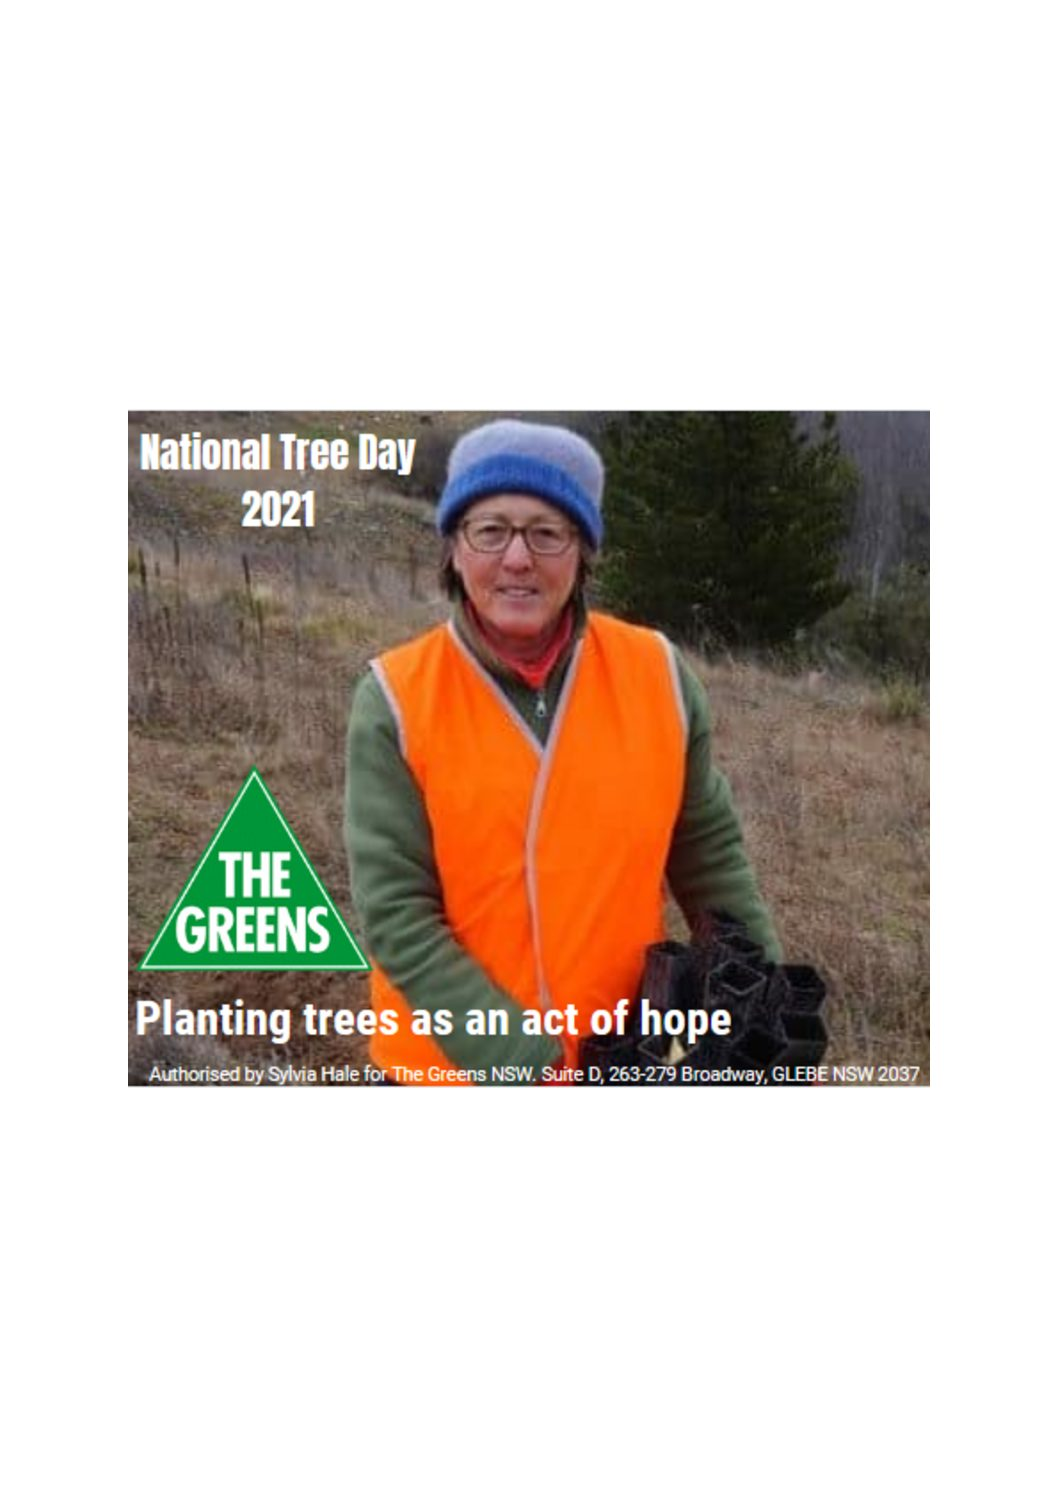 Planting trees as an act of hope